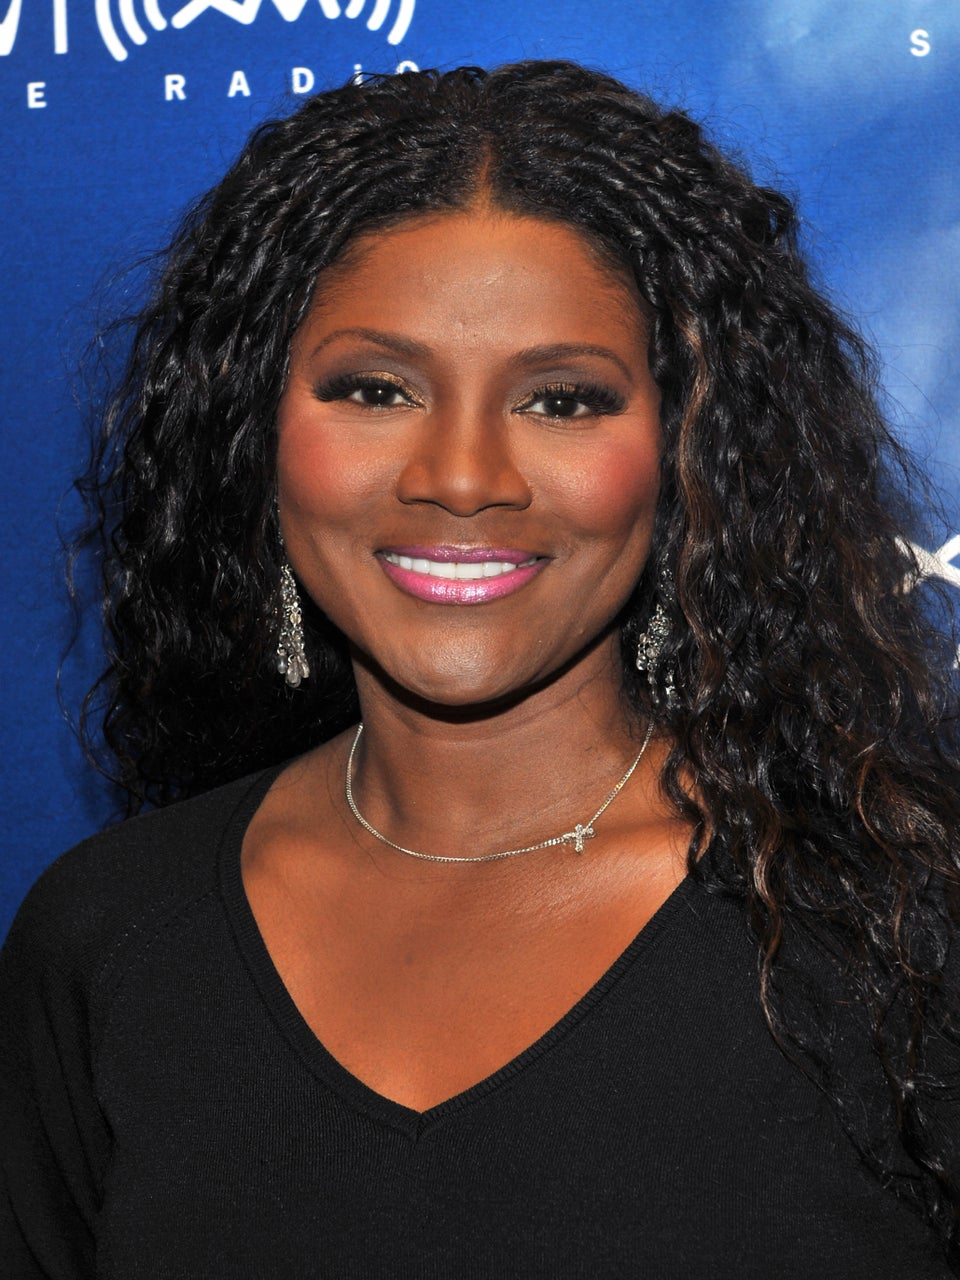 Coffee Talk: Juanita Bynum Confesses Sex with Women and Drug Use